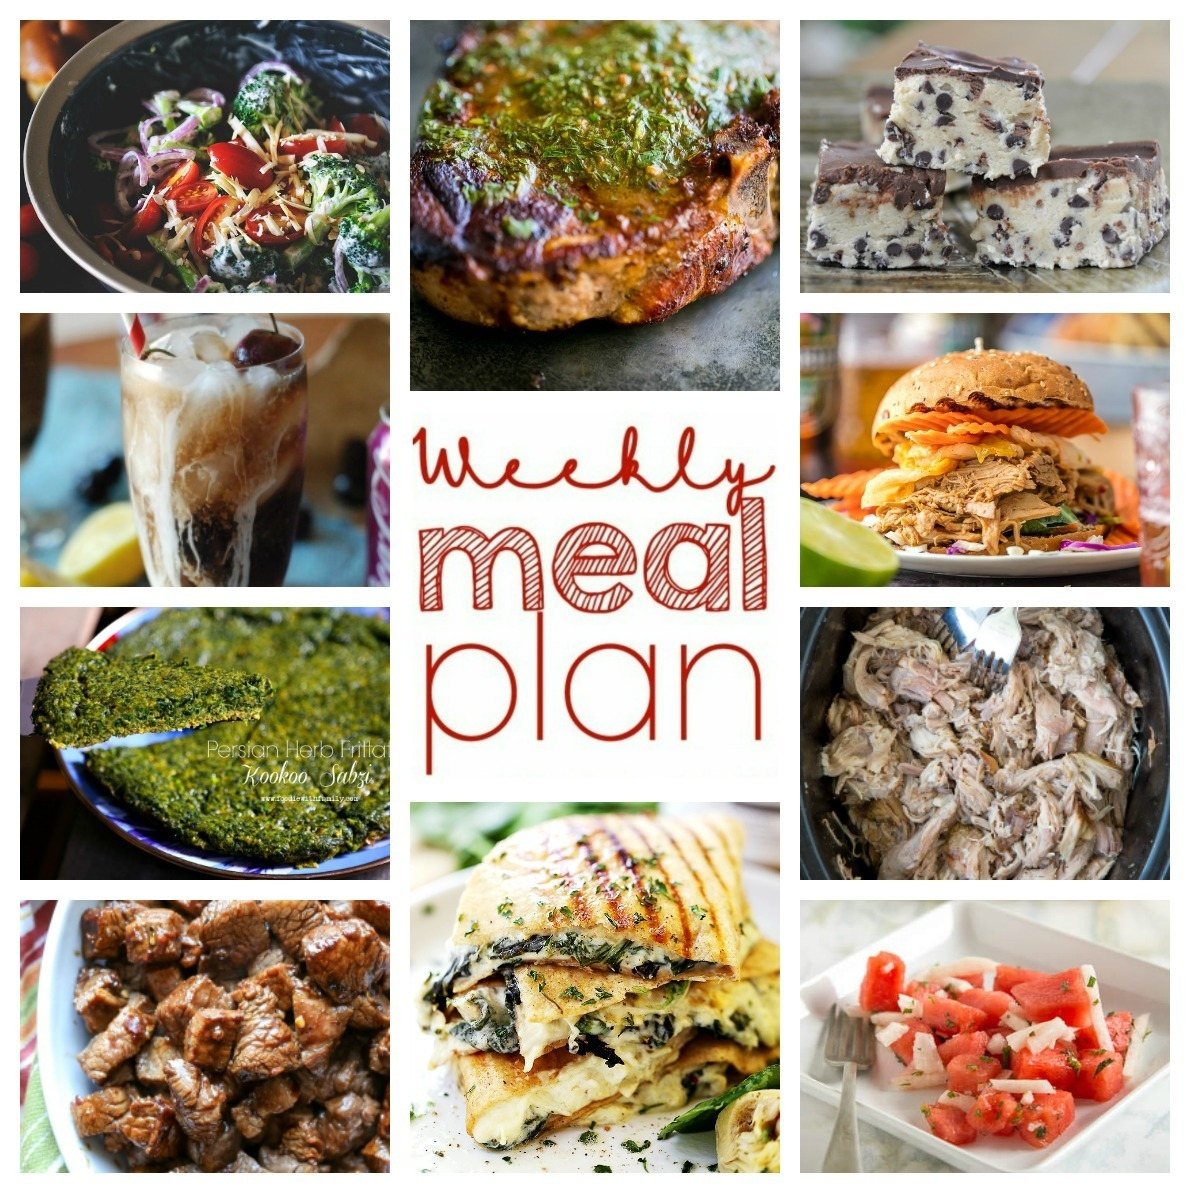 Weekly Meal Plan Week 51